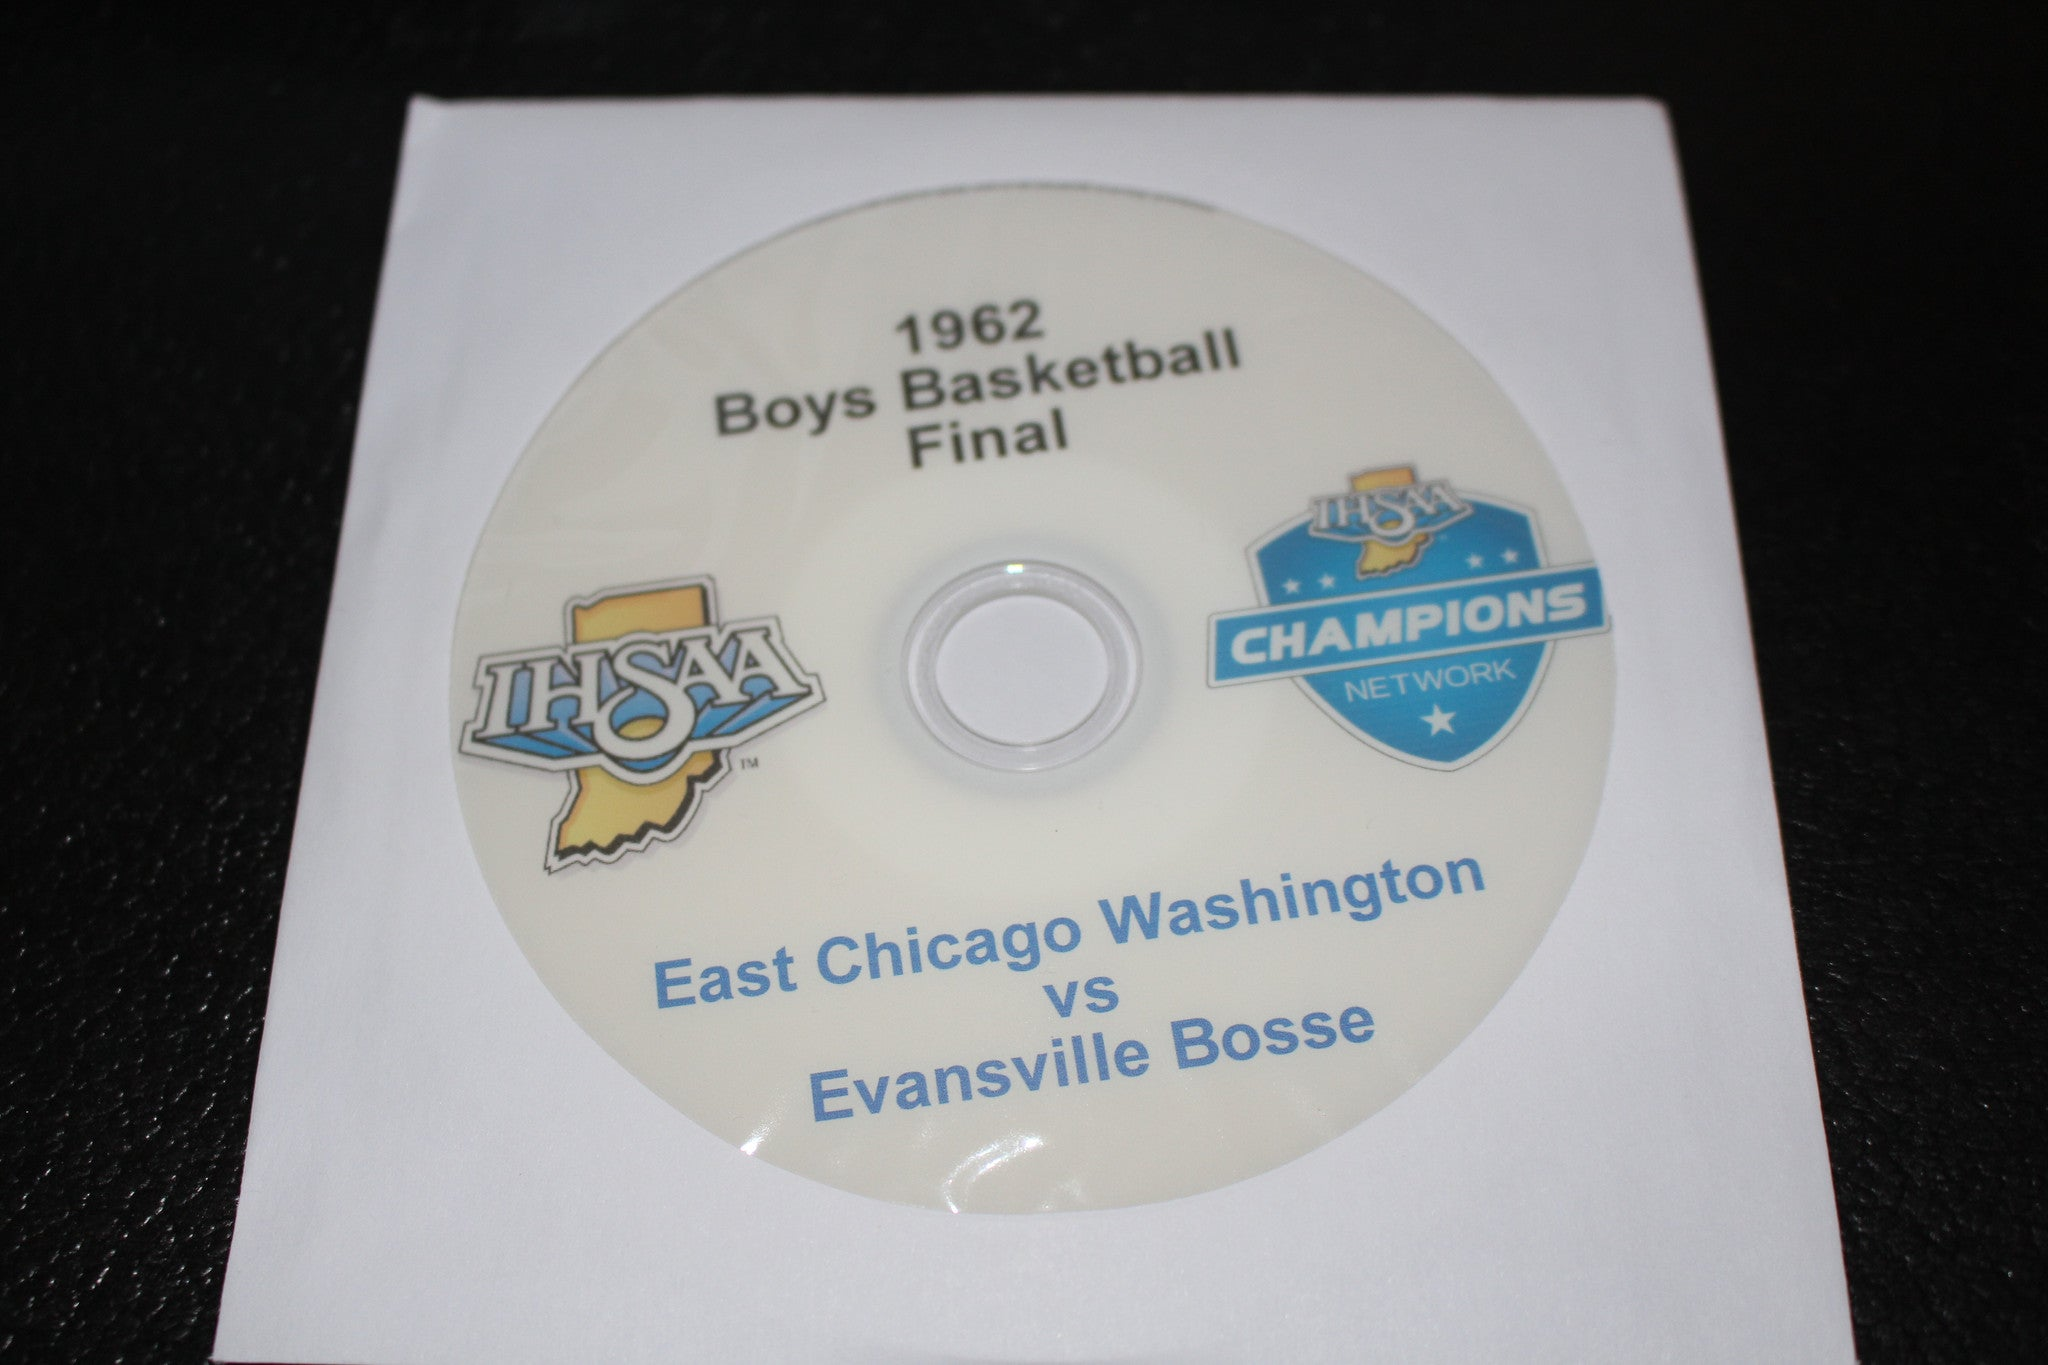 1962 Indiana High School Basketball Final DVD - Vintage Indy Sports